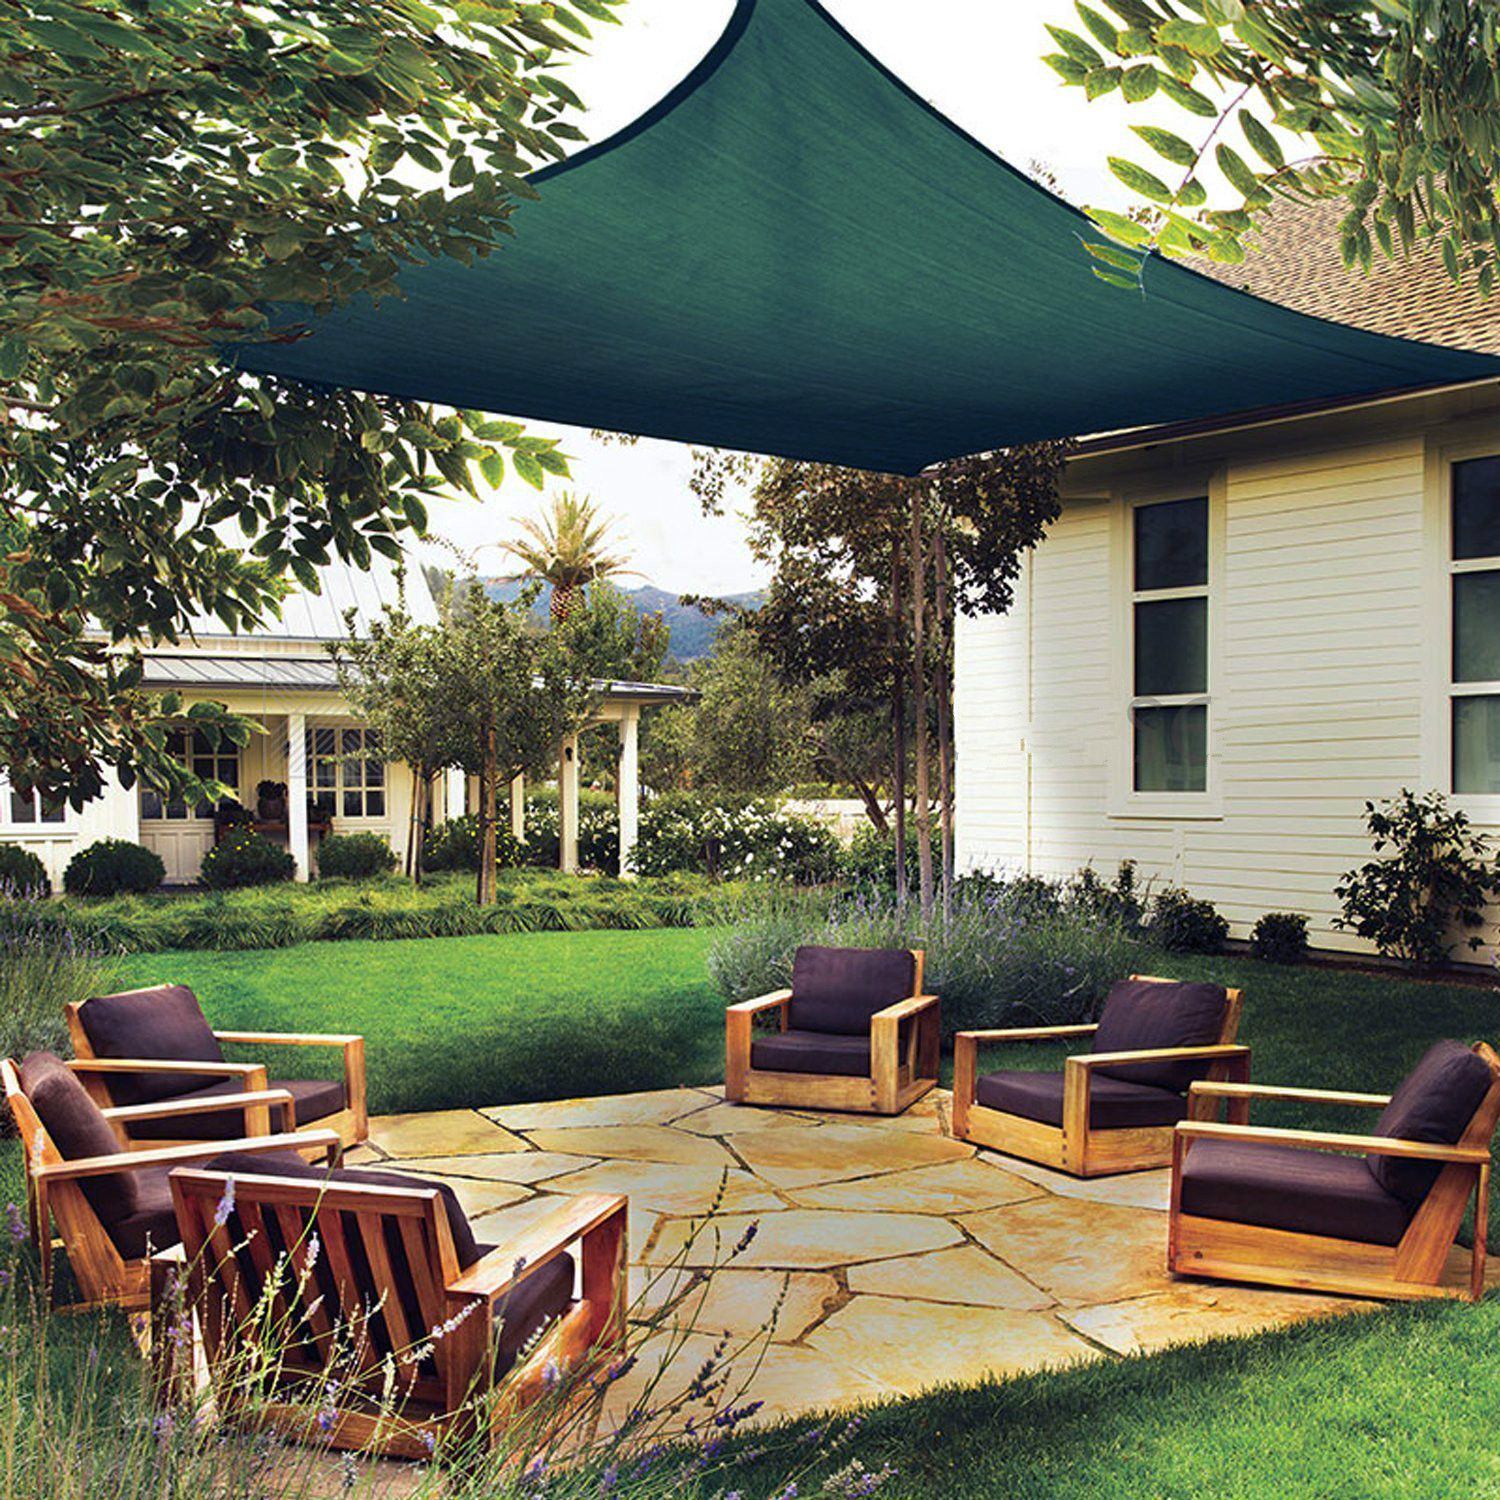 fabric patio covers. Cheap Canopy Patio Cover, Buy Quality Covers Directly From China Shade Fabric W